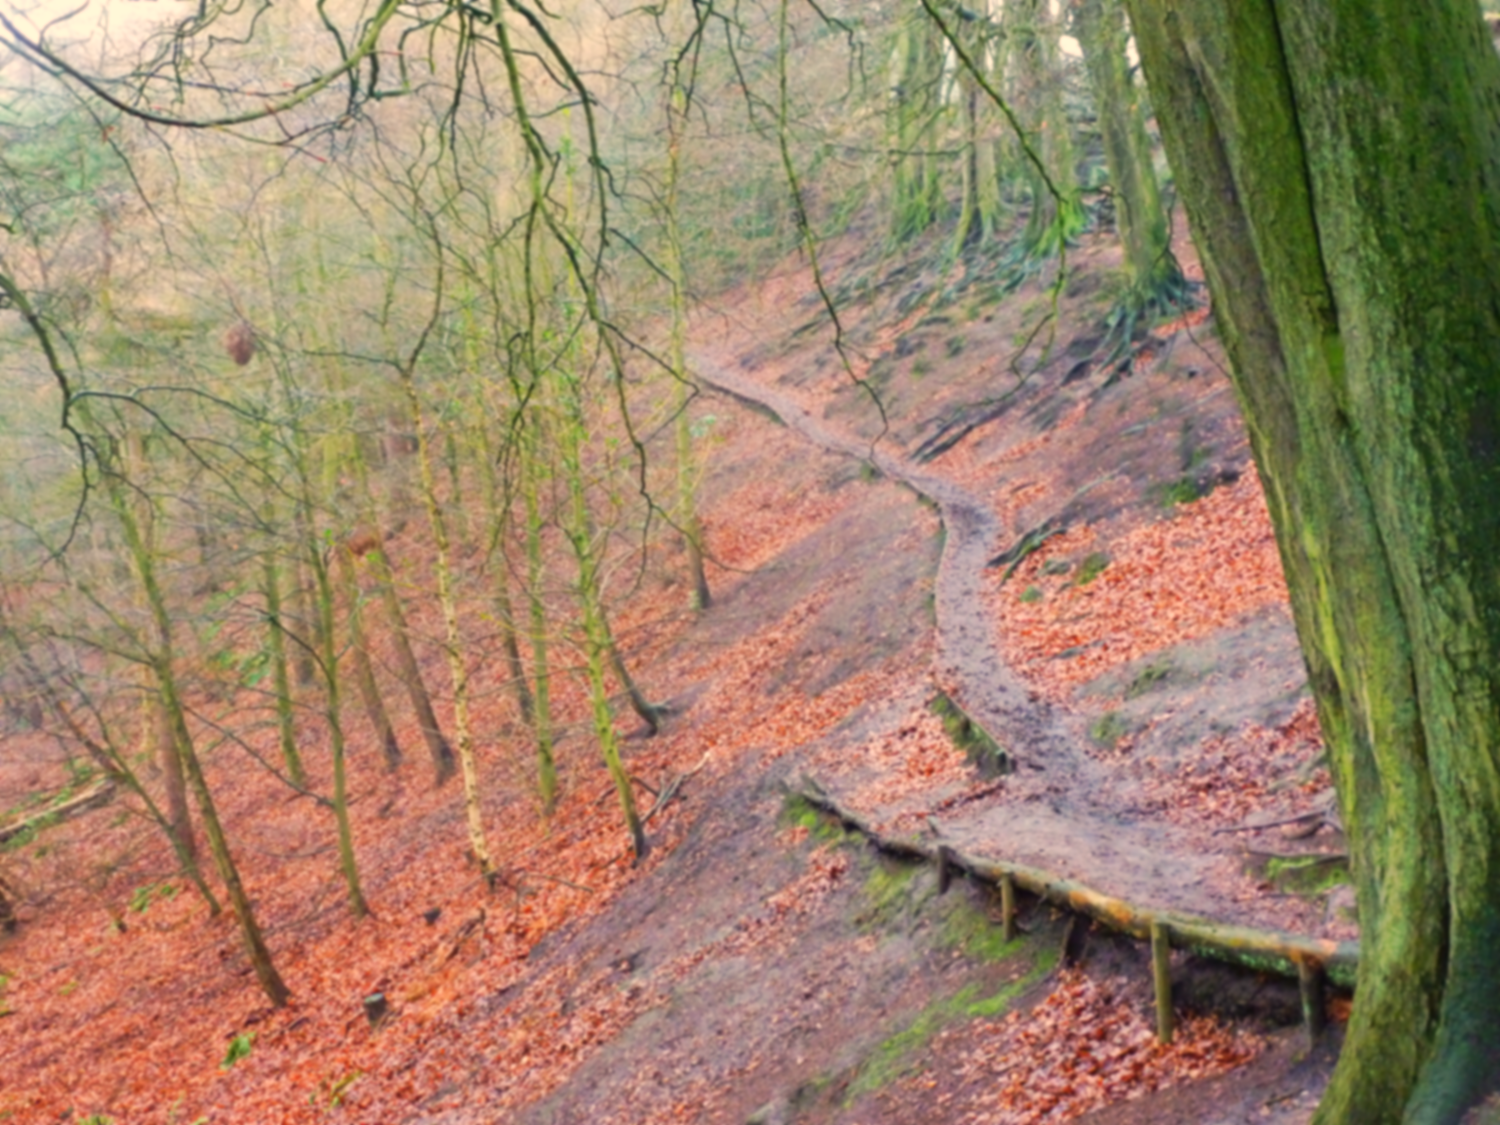 Footpath, Alderley Edge, Cheshire